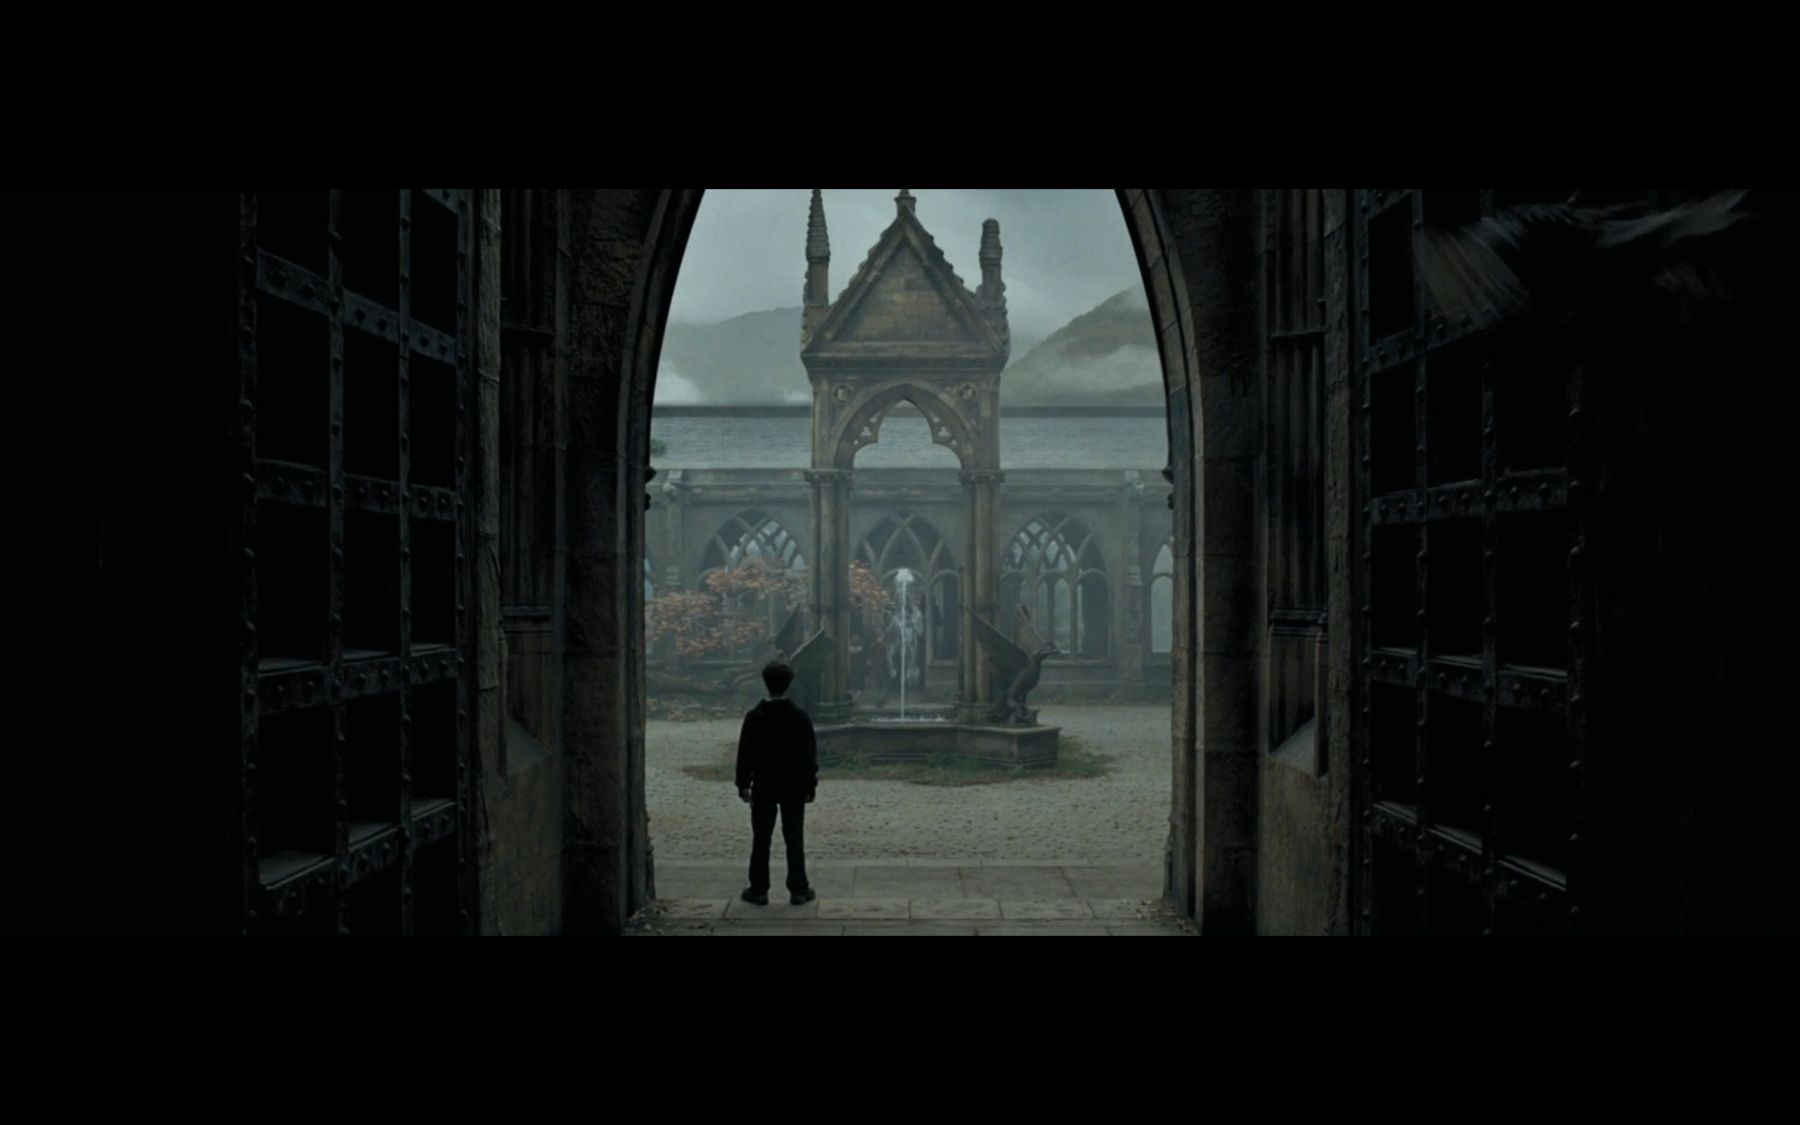 Shot 1 - Transition from the scene before in the Clock Tower